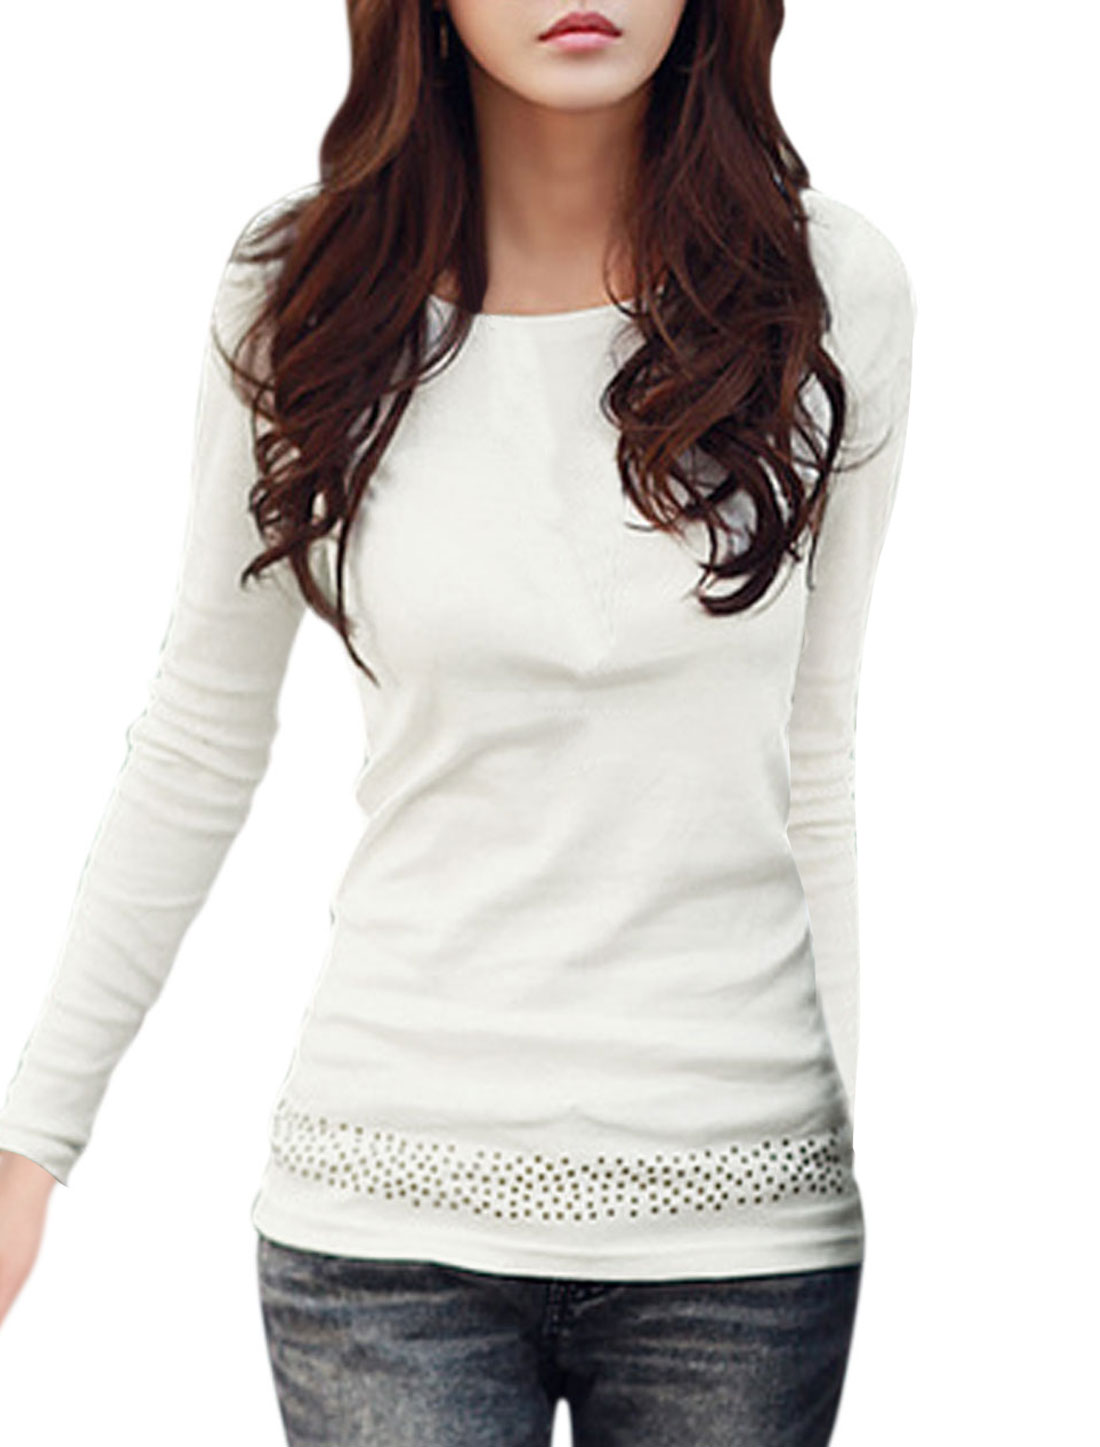 Long Sleeves Rivet Embellished Slipover Tunic Shirt for Women White M